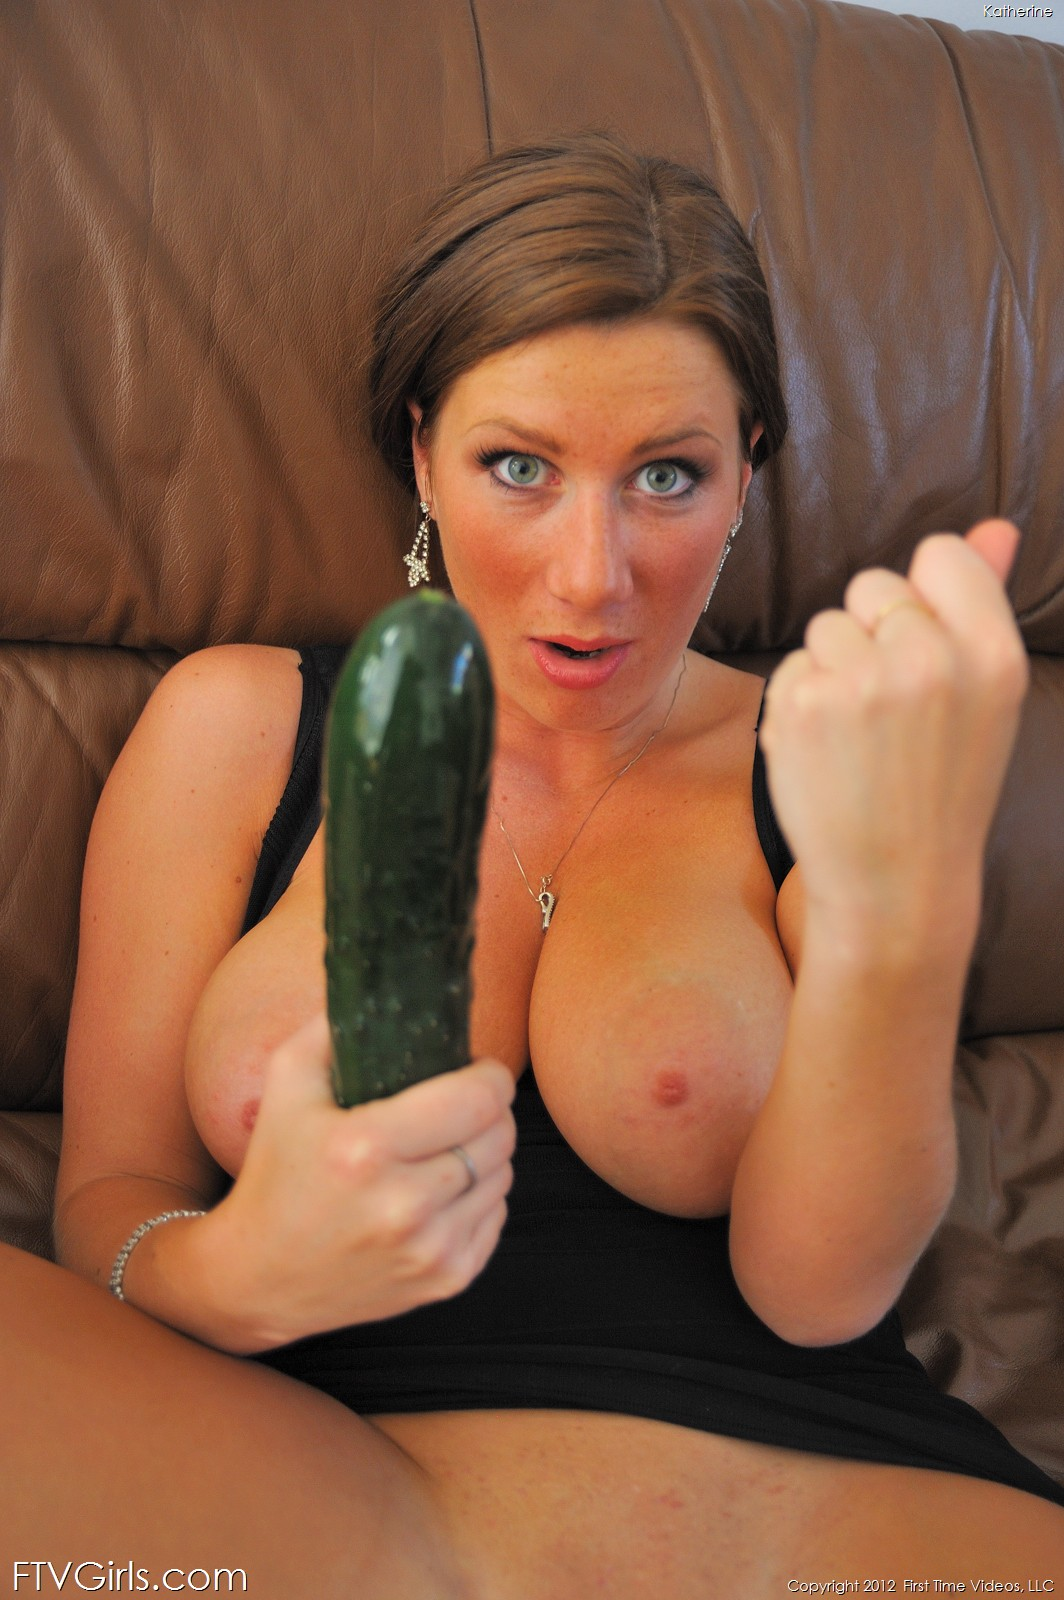 She fucks cucumbers